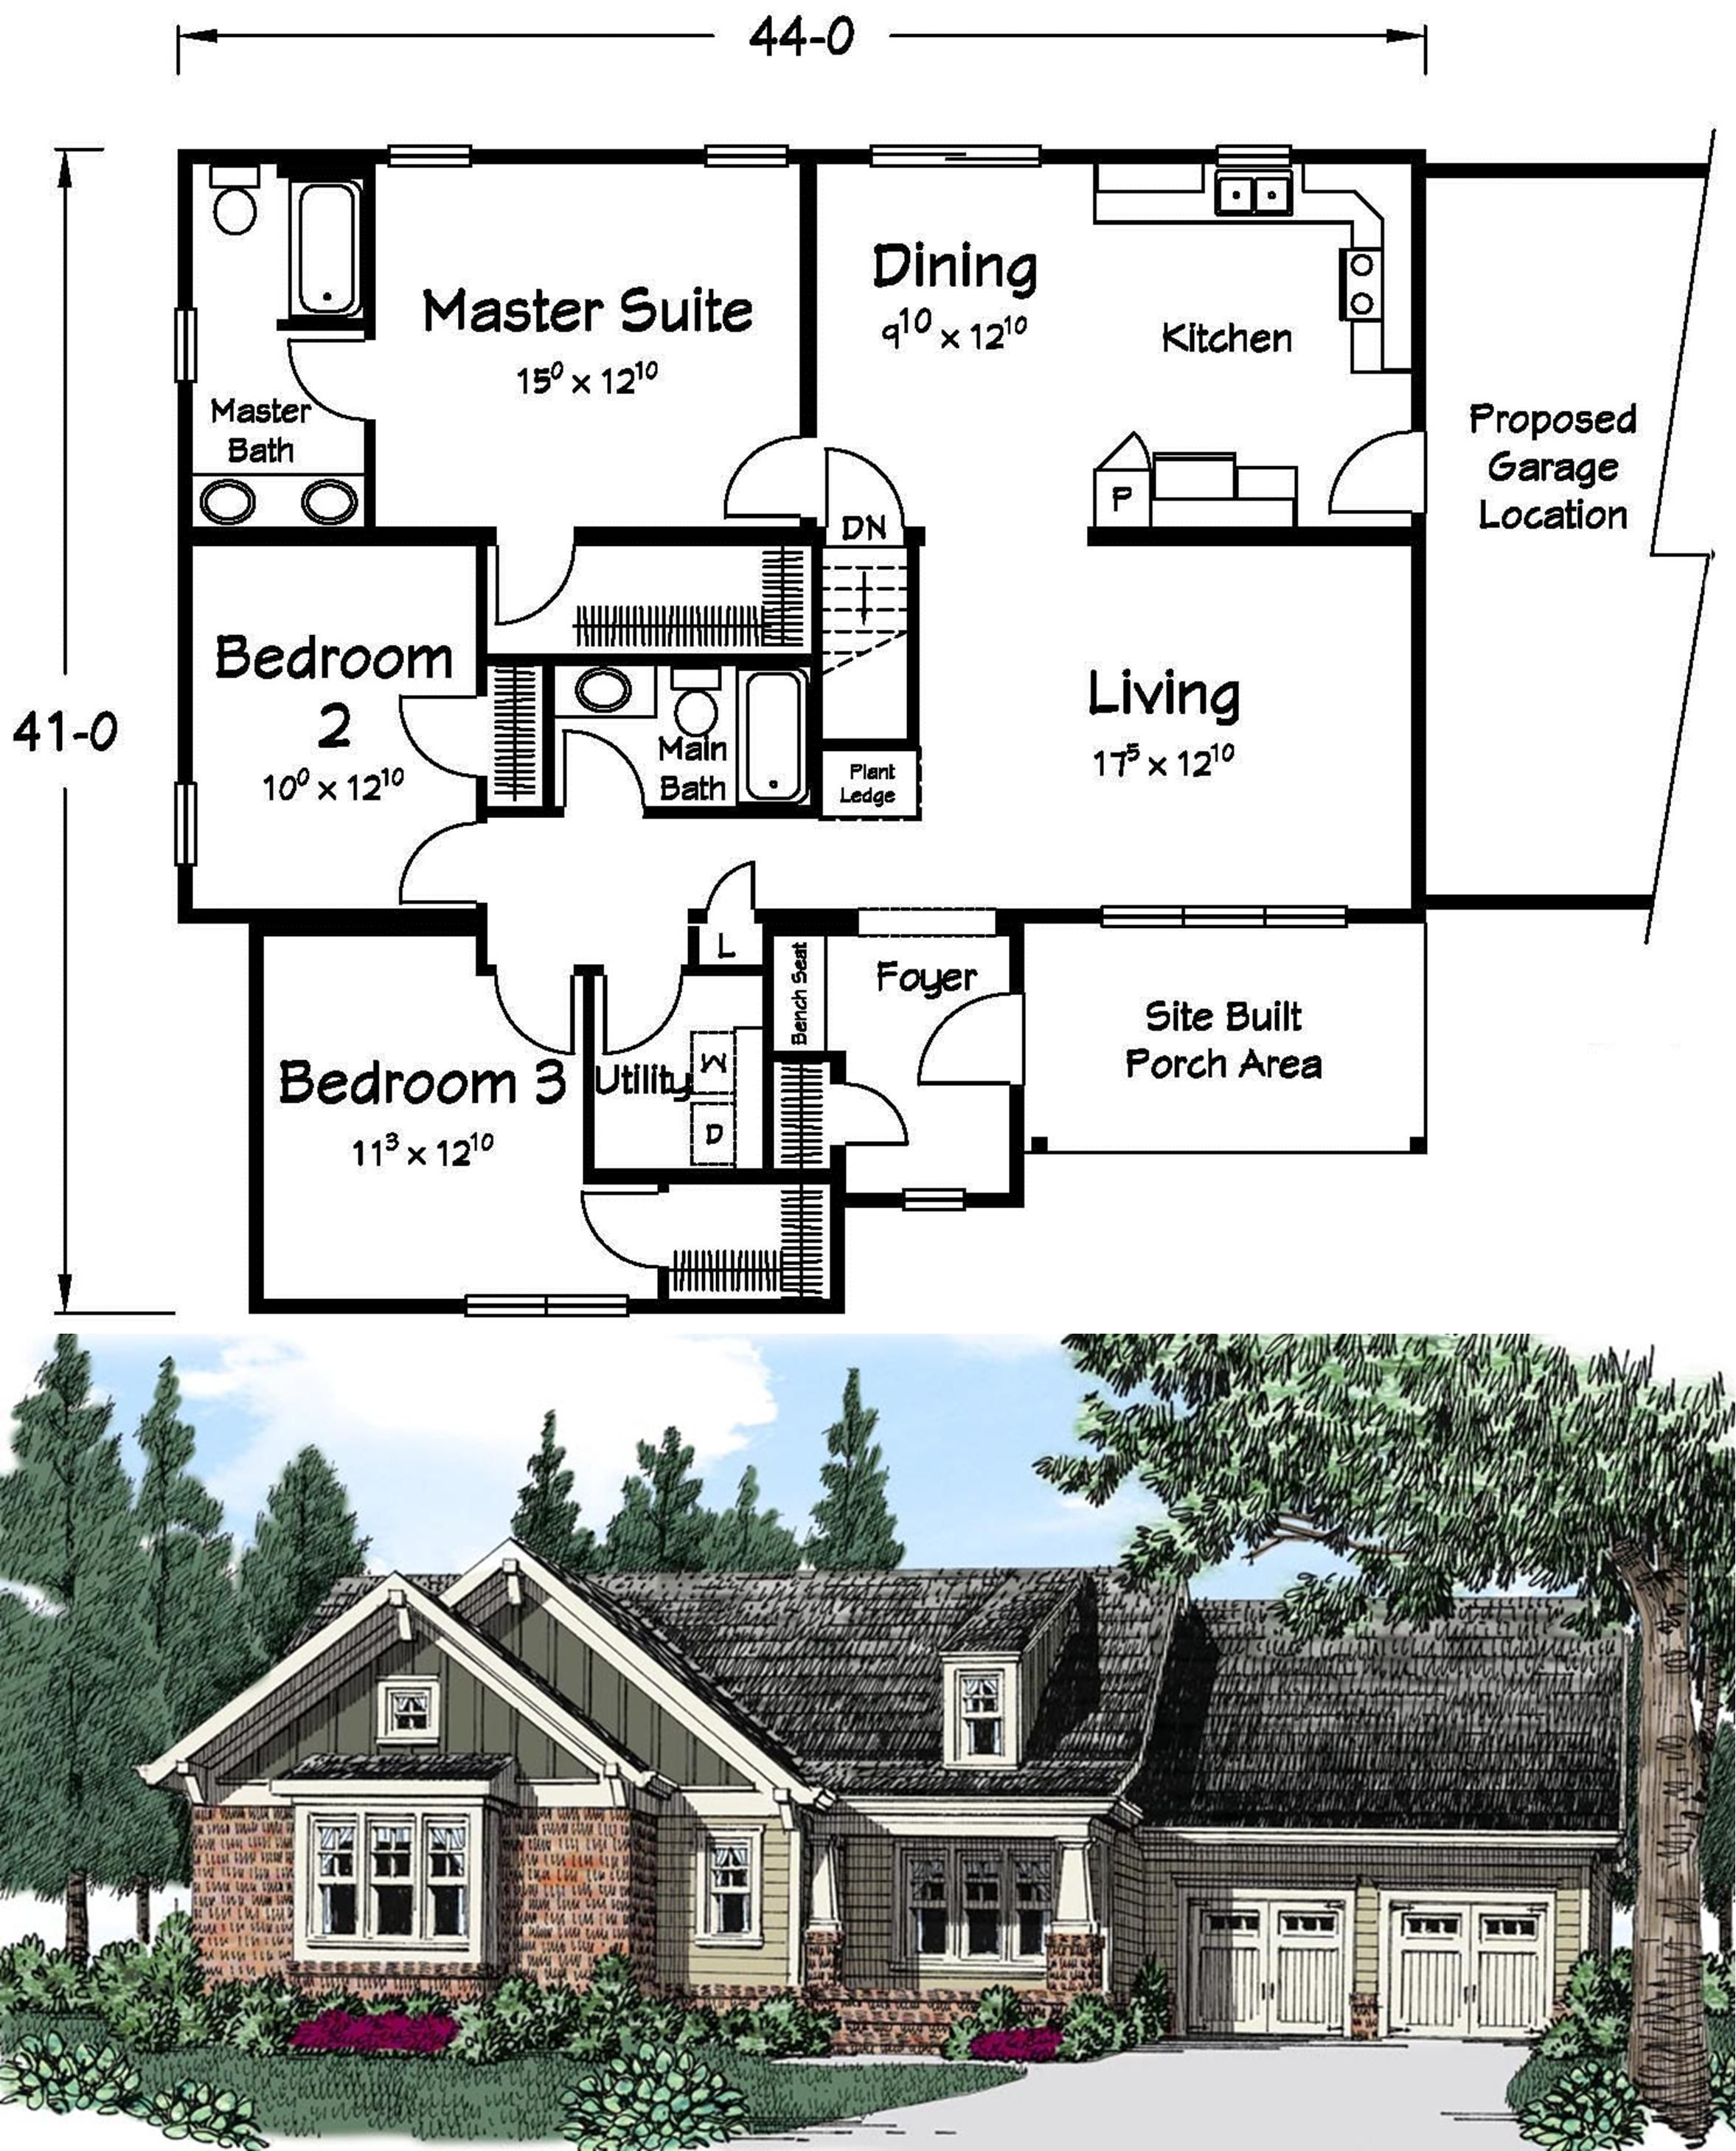 Tell us your thoughts on this floor plan below by commenting below ...